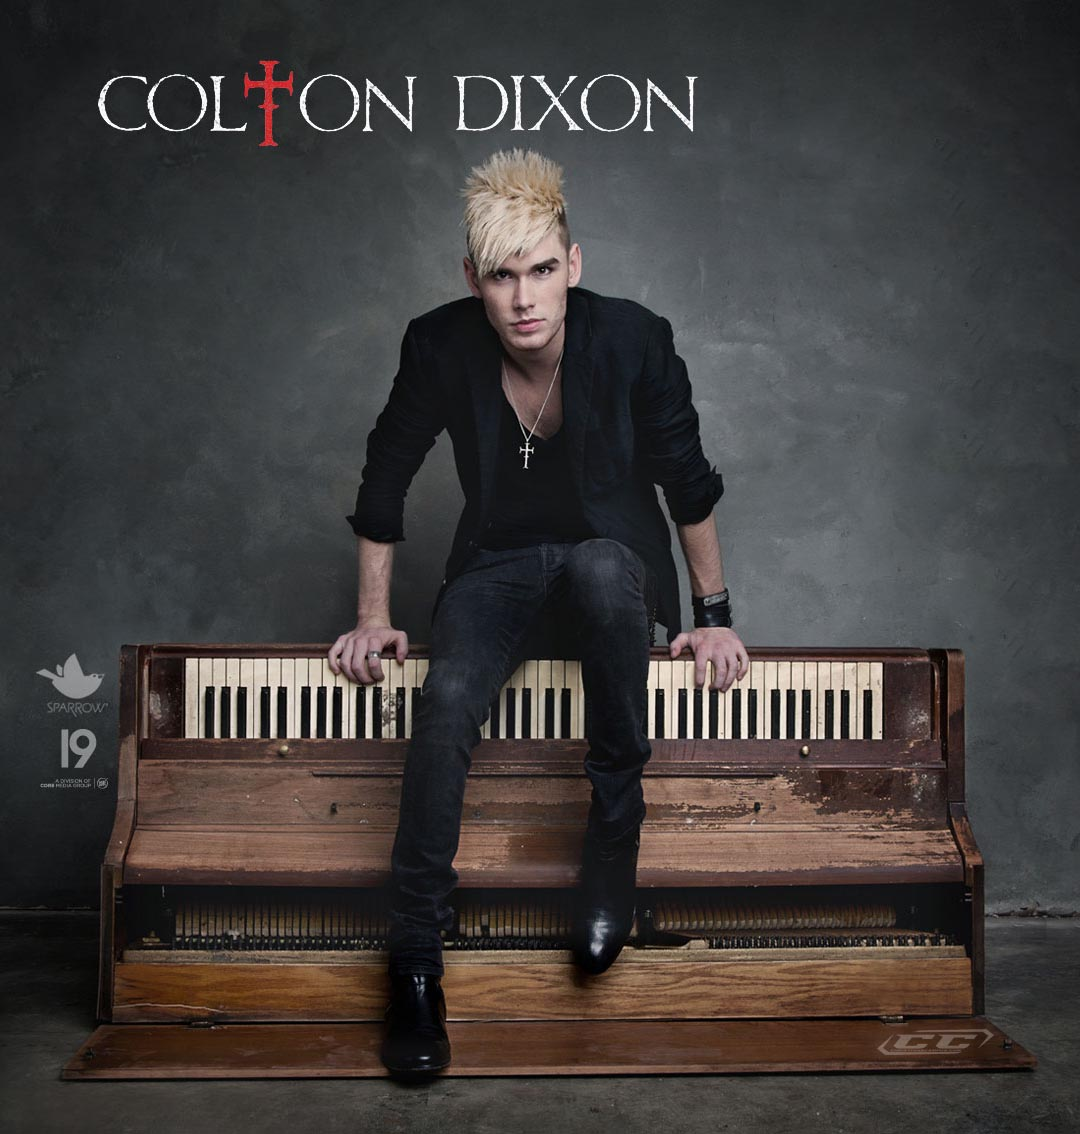 Colton Dixon - A Messenger 2013 Biography and History